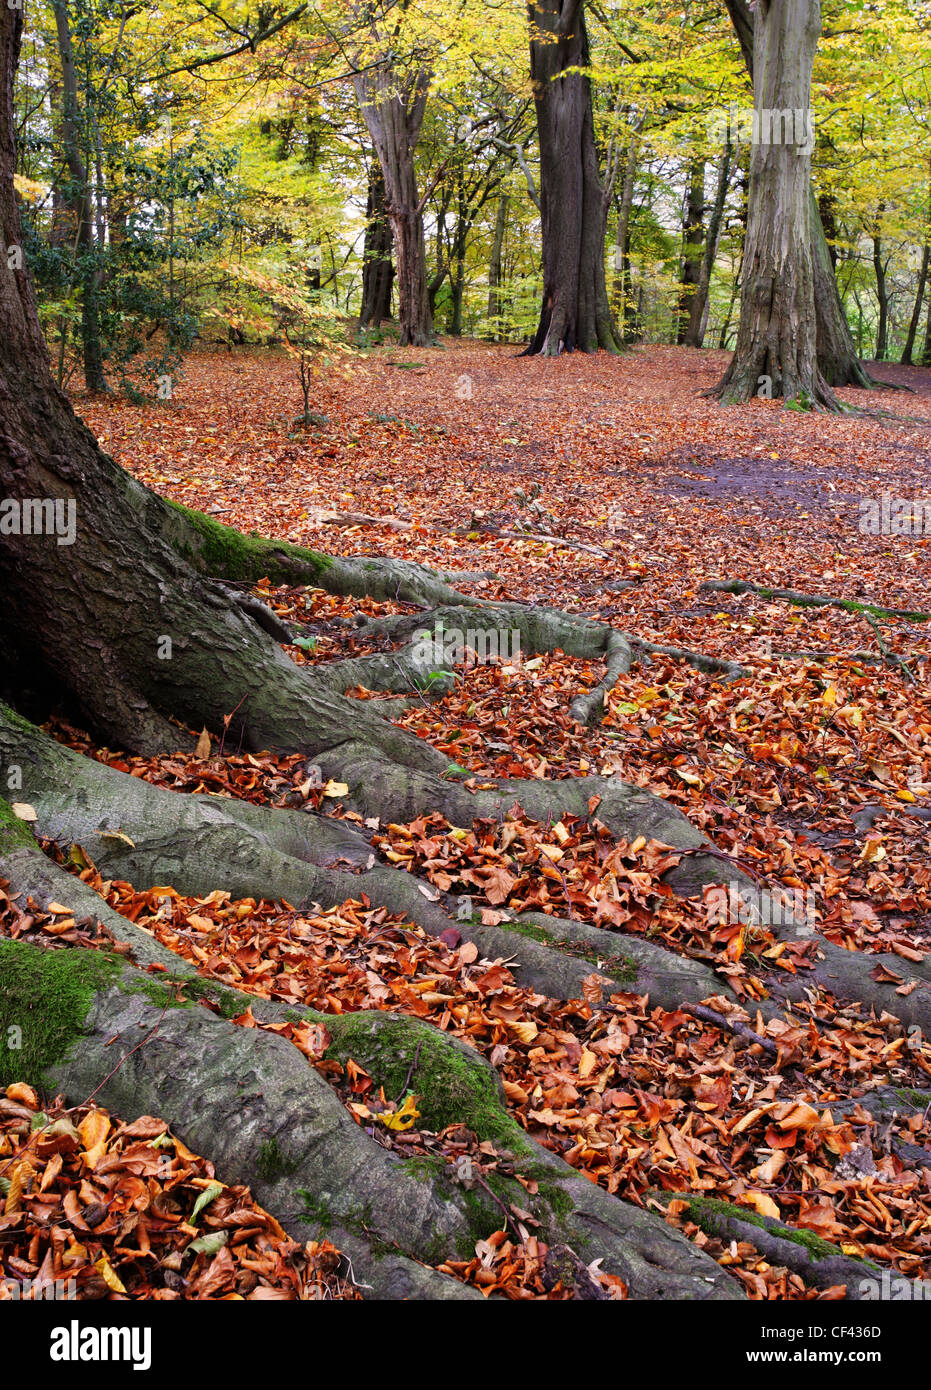 A layer of russet leaves carpet the ground as autumn reaches its peak in Dibbinsdale nature reserve. - Stock Image